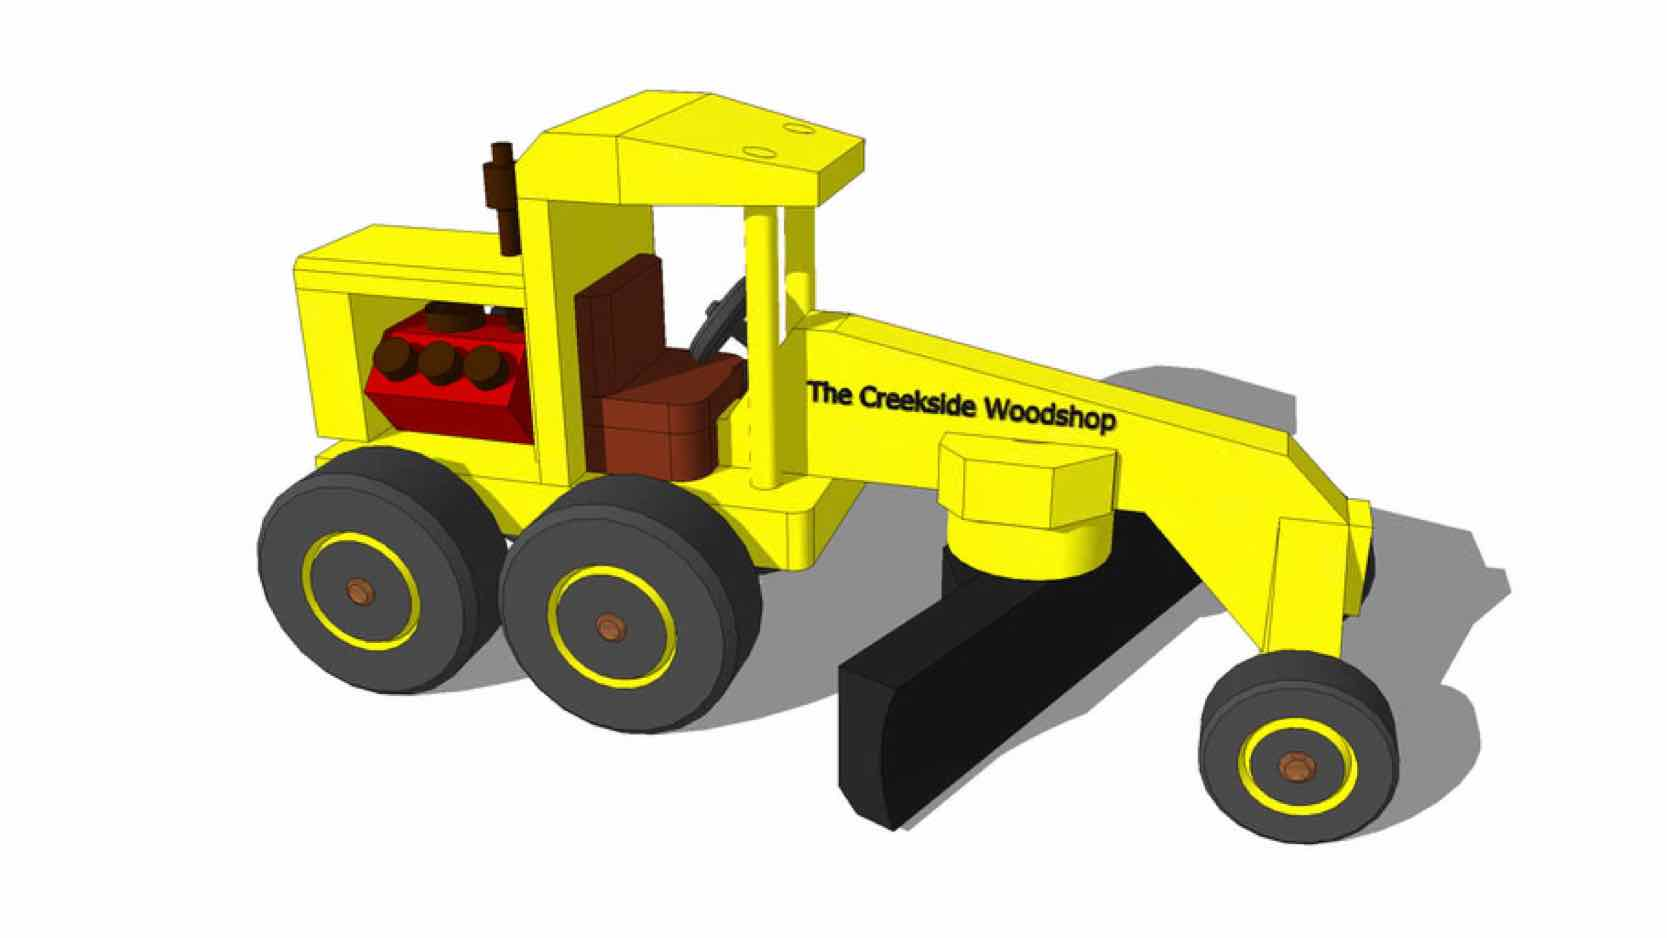 models,conostruction equipment,tractors,road graders,toys,sketchup,Google 3D,3-D warehouse,road graders,childrens,kids,childs,drawings,free woodworking plans,projects,do it yourself,woodworkers